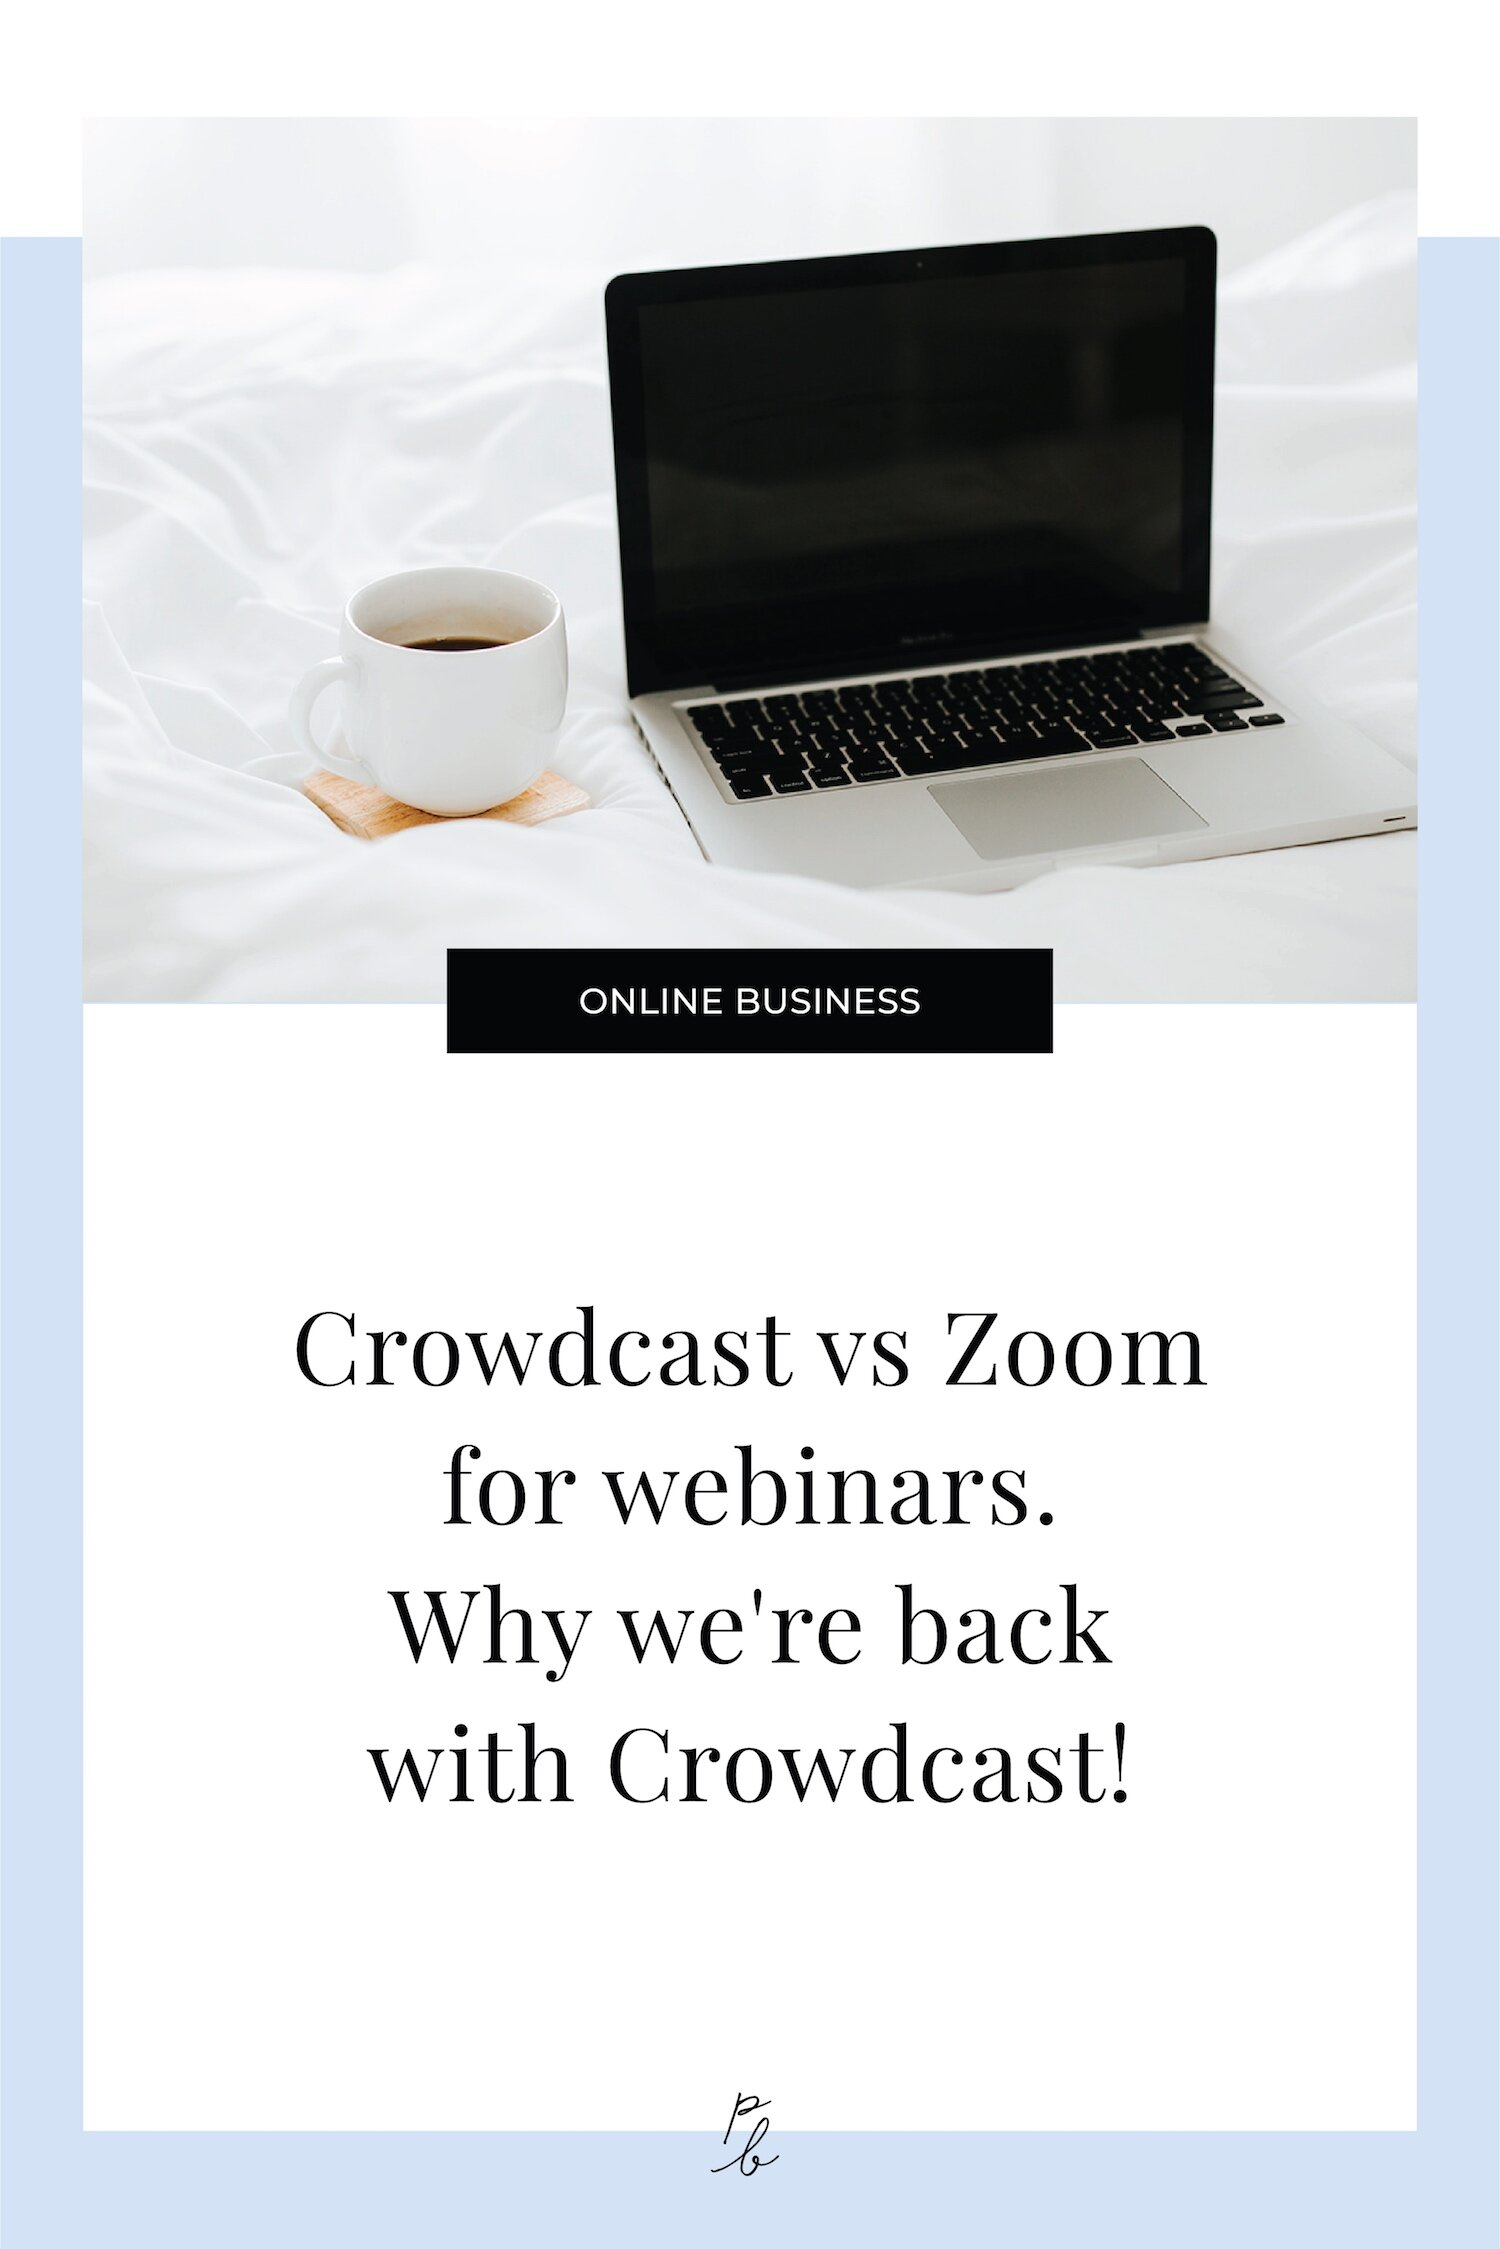 Crowdcast vs Zoom for webinars. Why we're back with Crowdcast!